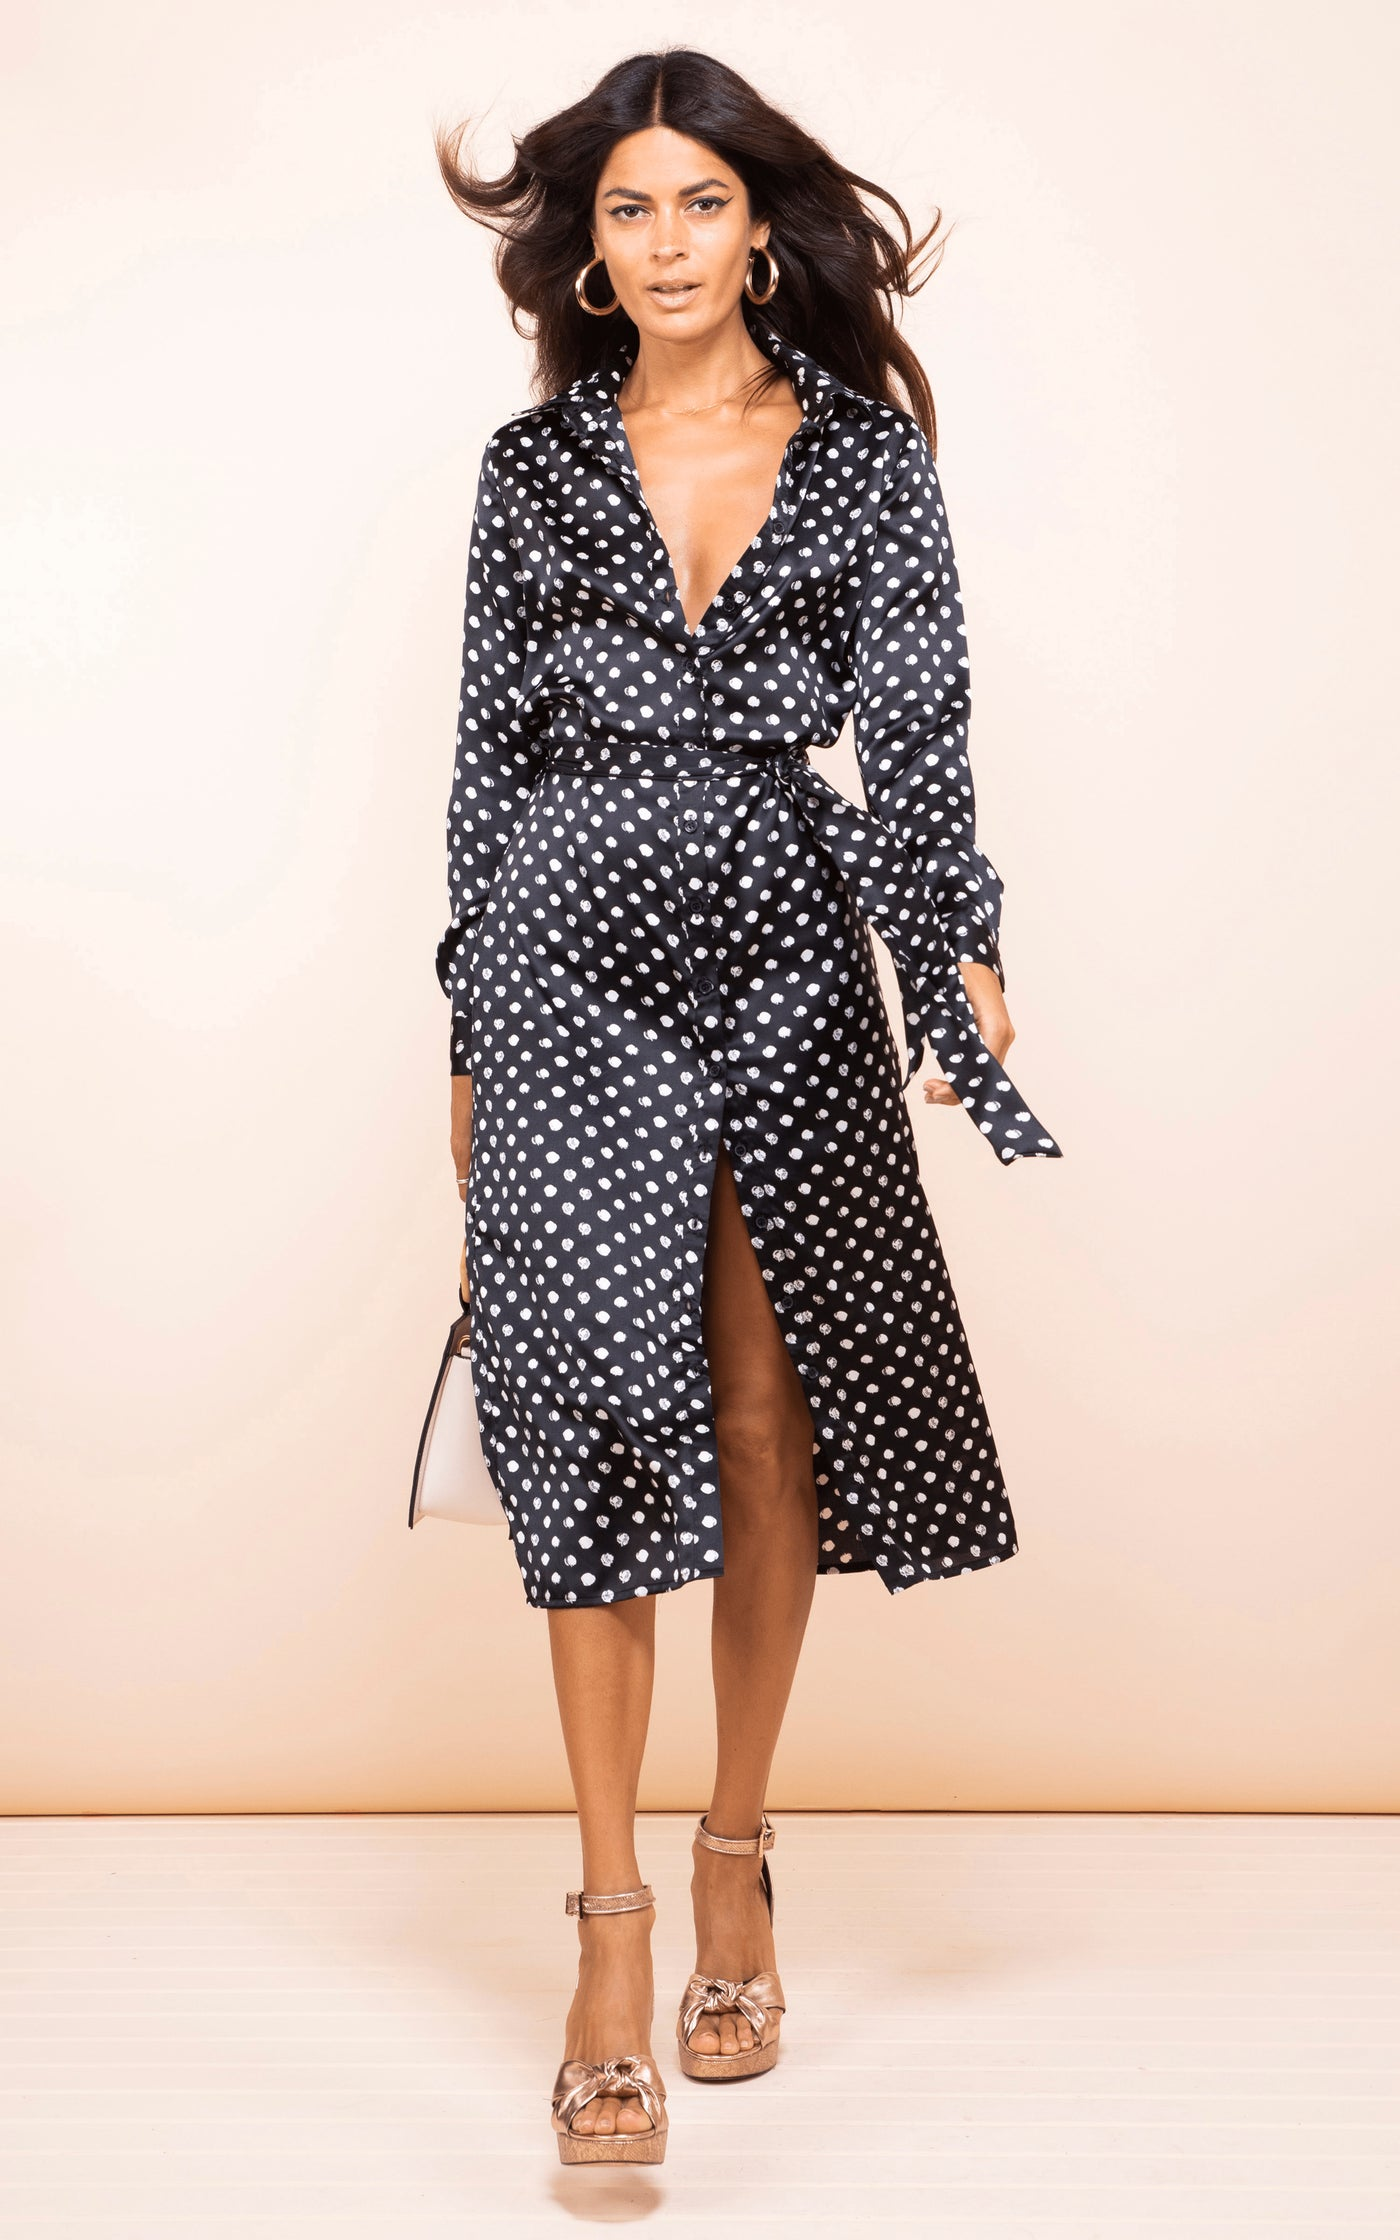 Dancing Leopard model walks forward wearing Hadiba Midi Shirt Dress in black dotty print